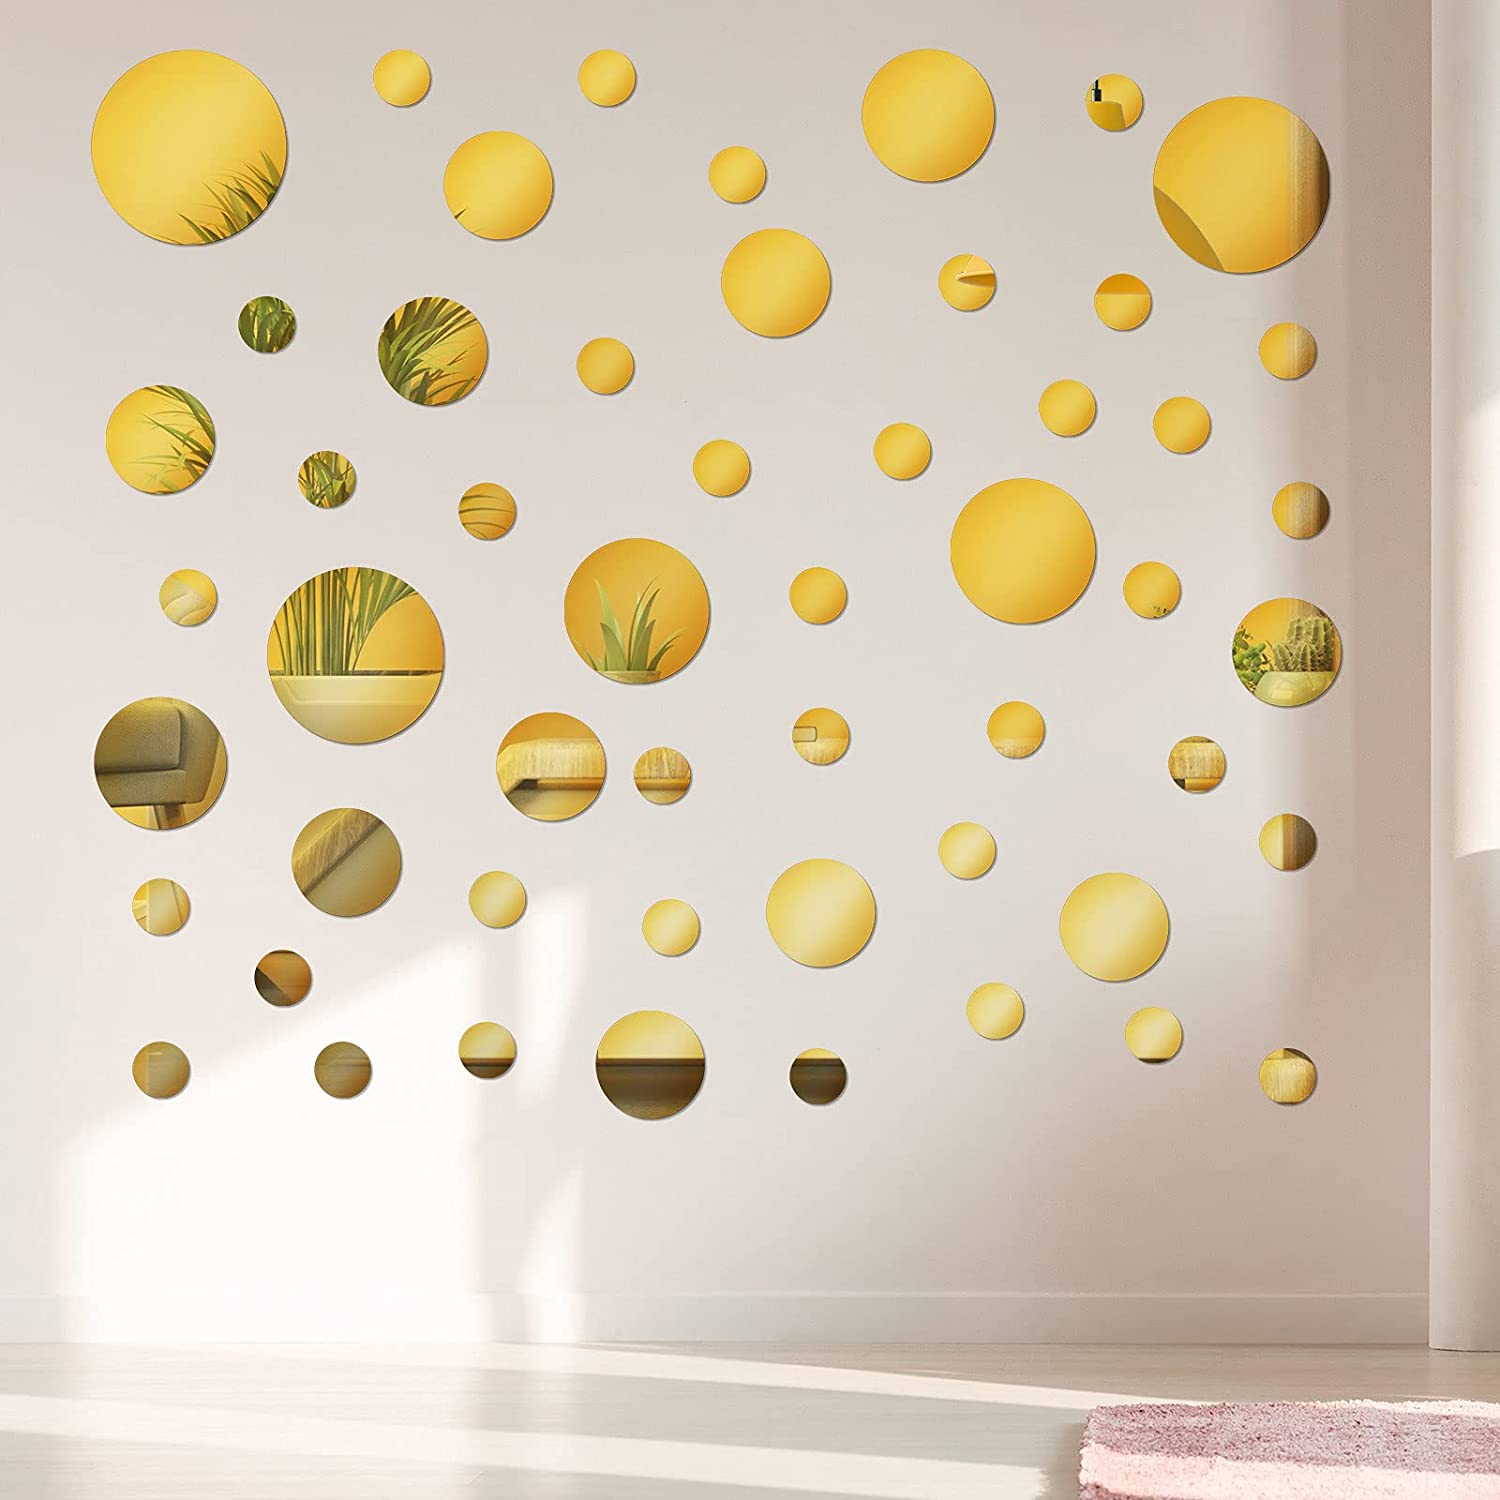 60 Pieces Acrylic Mirror Setting Round DIY Decor Tiles Adhesive Wall Sticker Decal for Bedroom Wall Decor Mirror Living Dining Room Art Background Decoration (Gold)